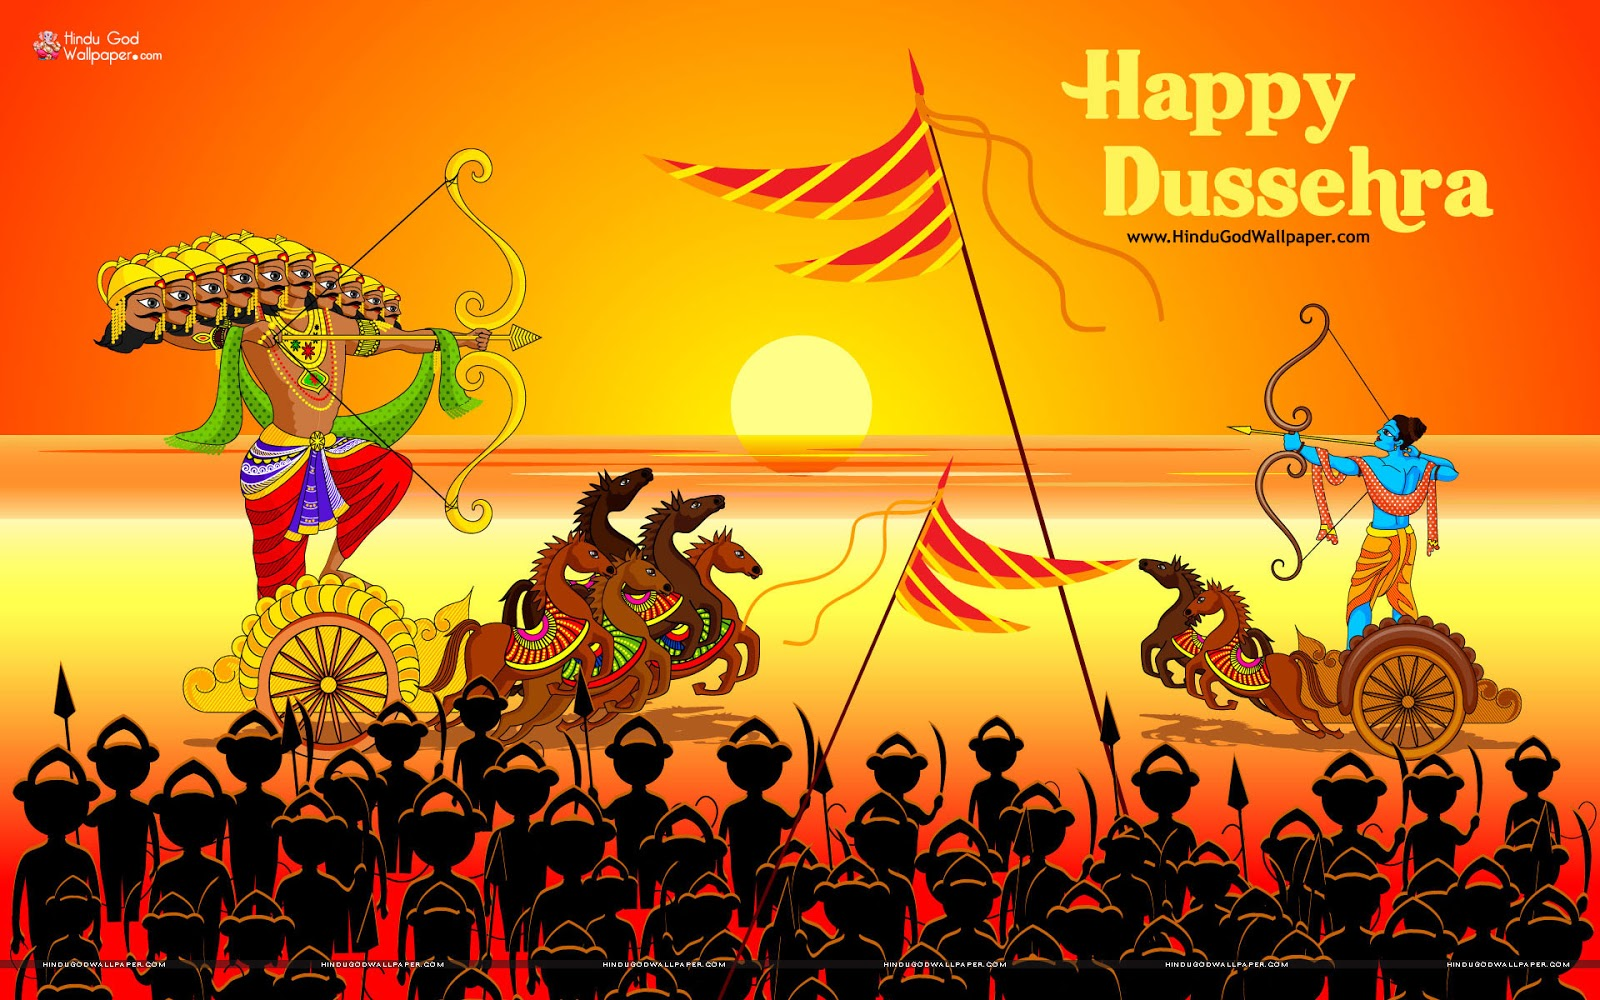 Happy Dussehra Wishes in Marathi Images Pictures 2017  26 January Hindi Shayari 2018  Republic